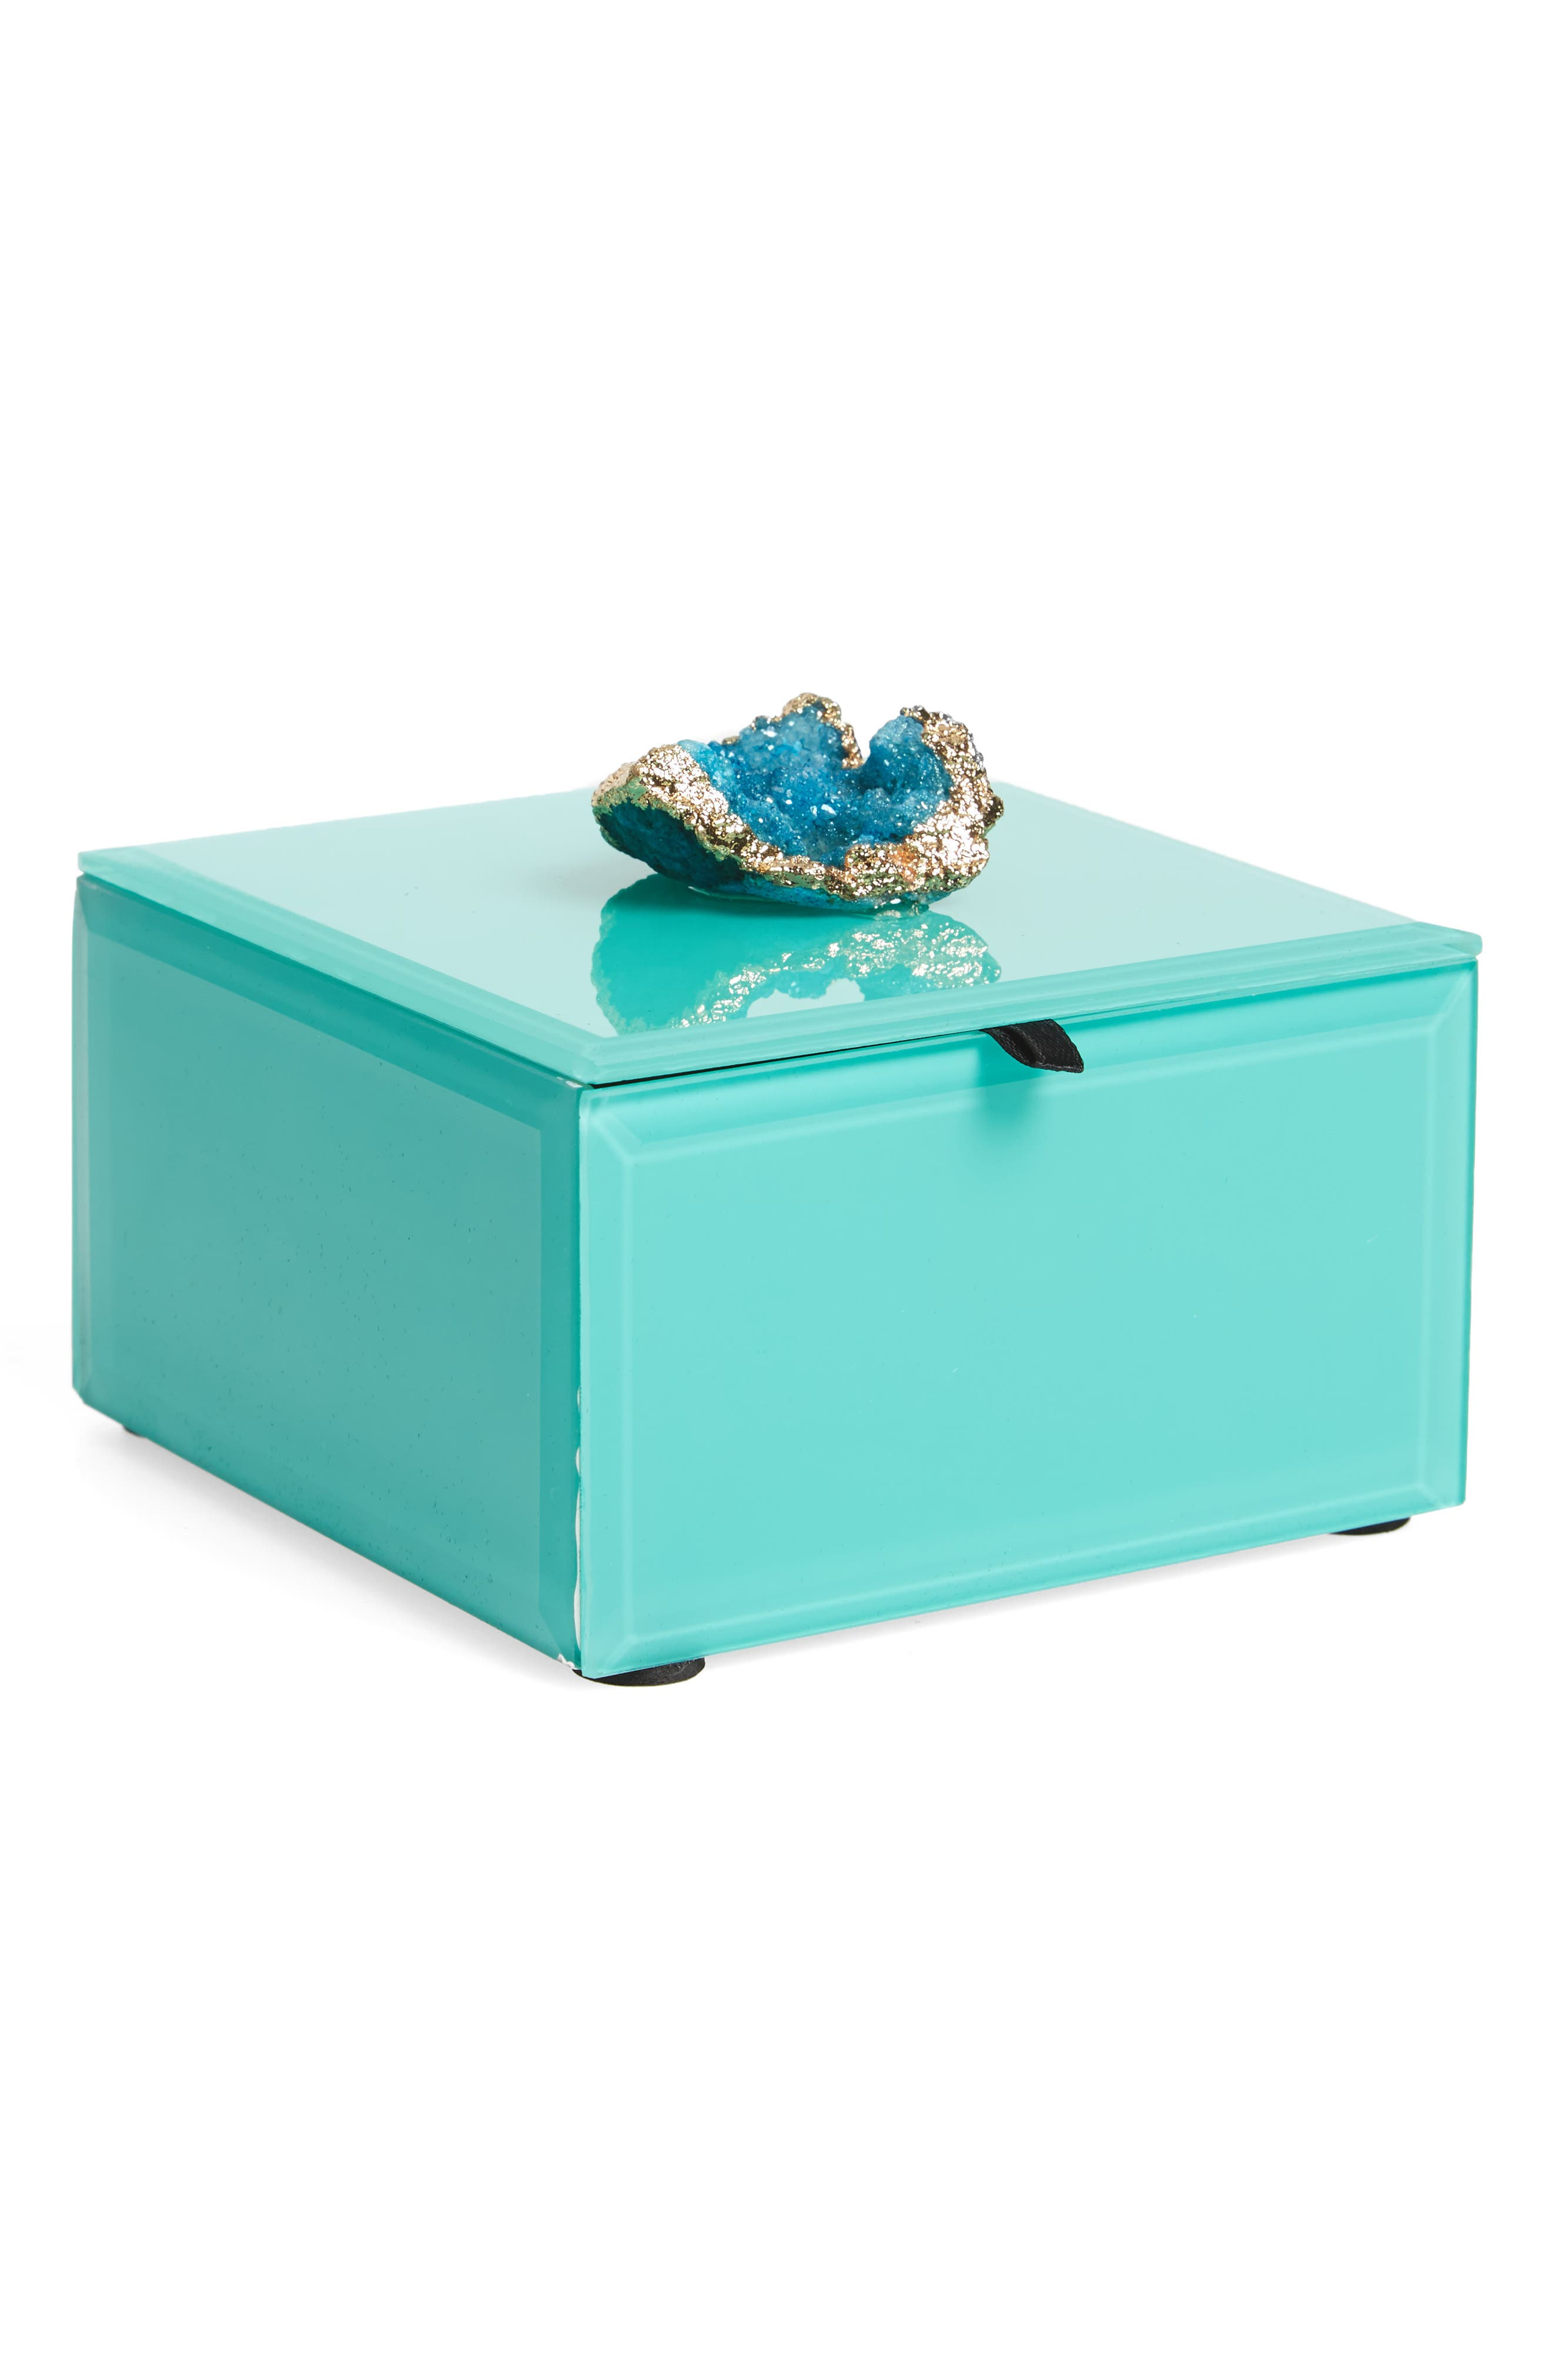 American Atelier Peacock Agate Jewelry Box